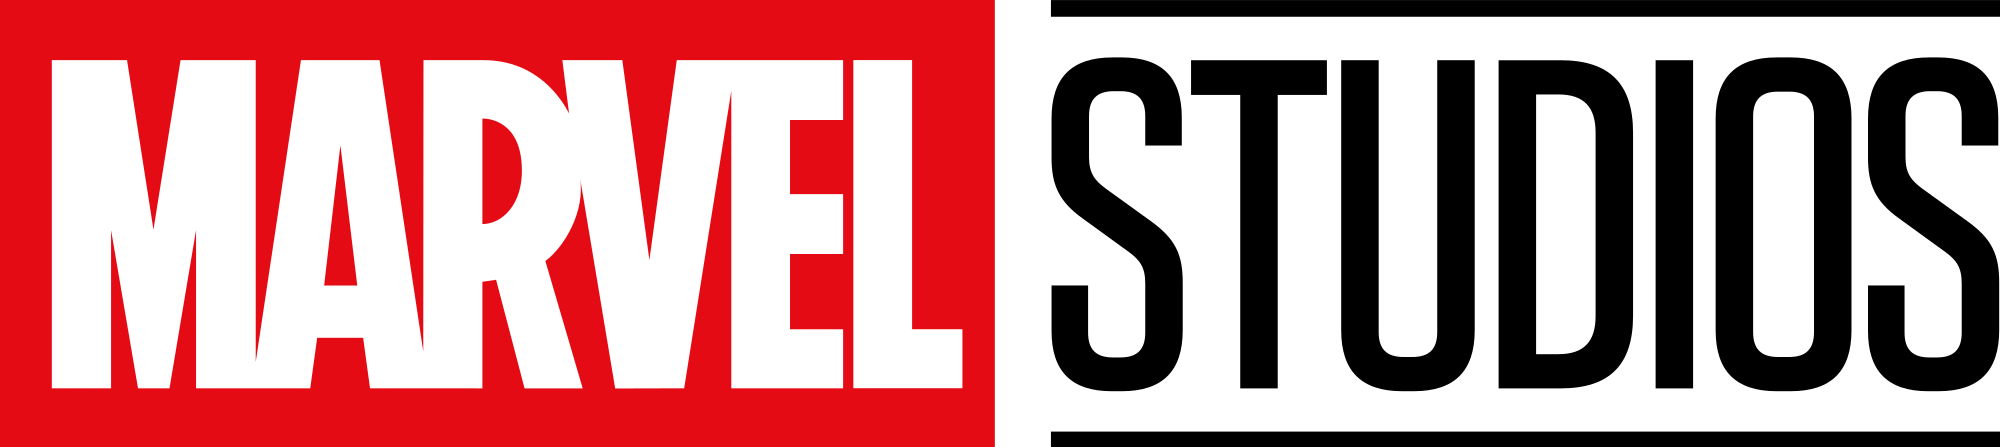 Marvel_Studios_2016_Transparent_Logo.png